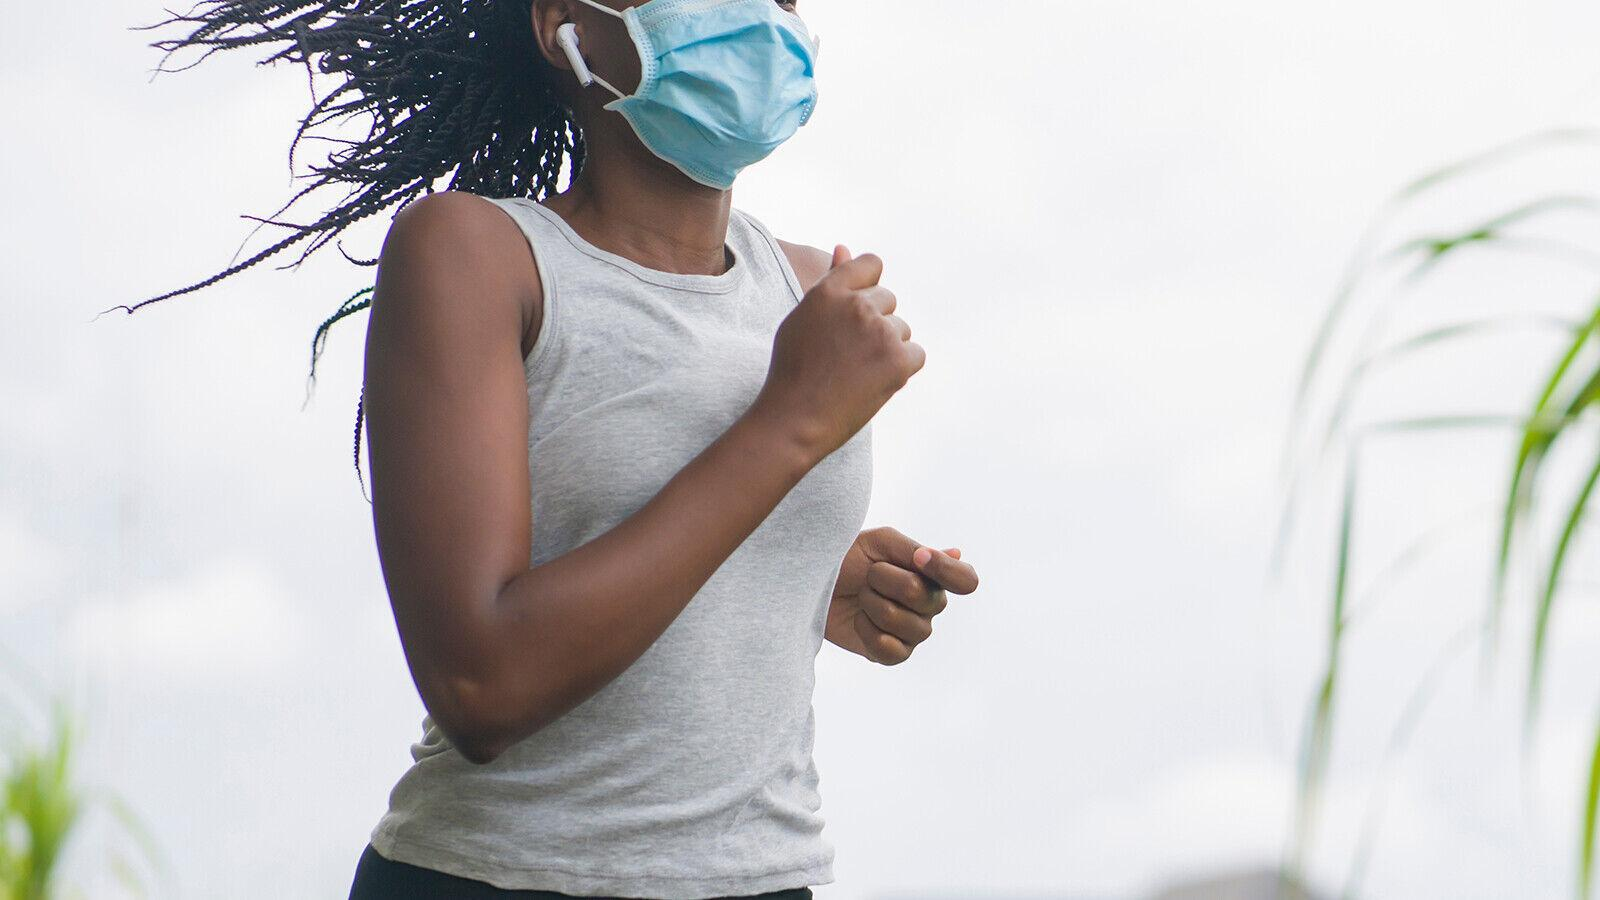 CDC issues new outdoor mask guidance for fully vaccinated people